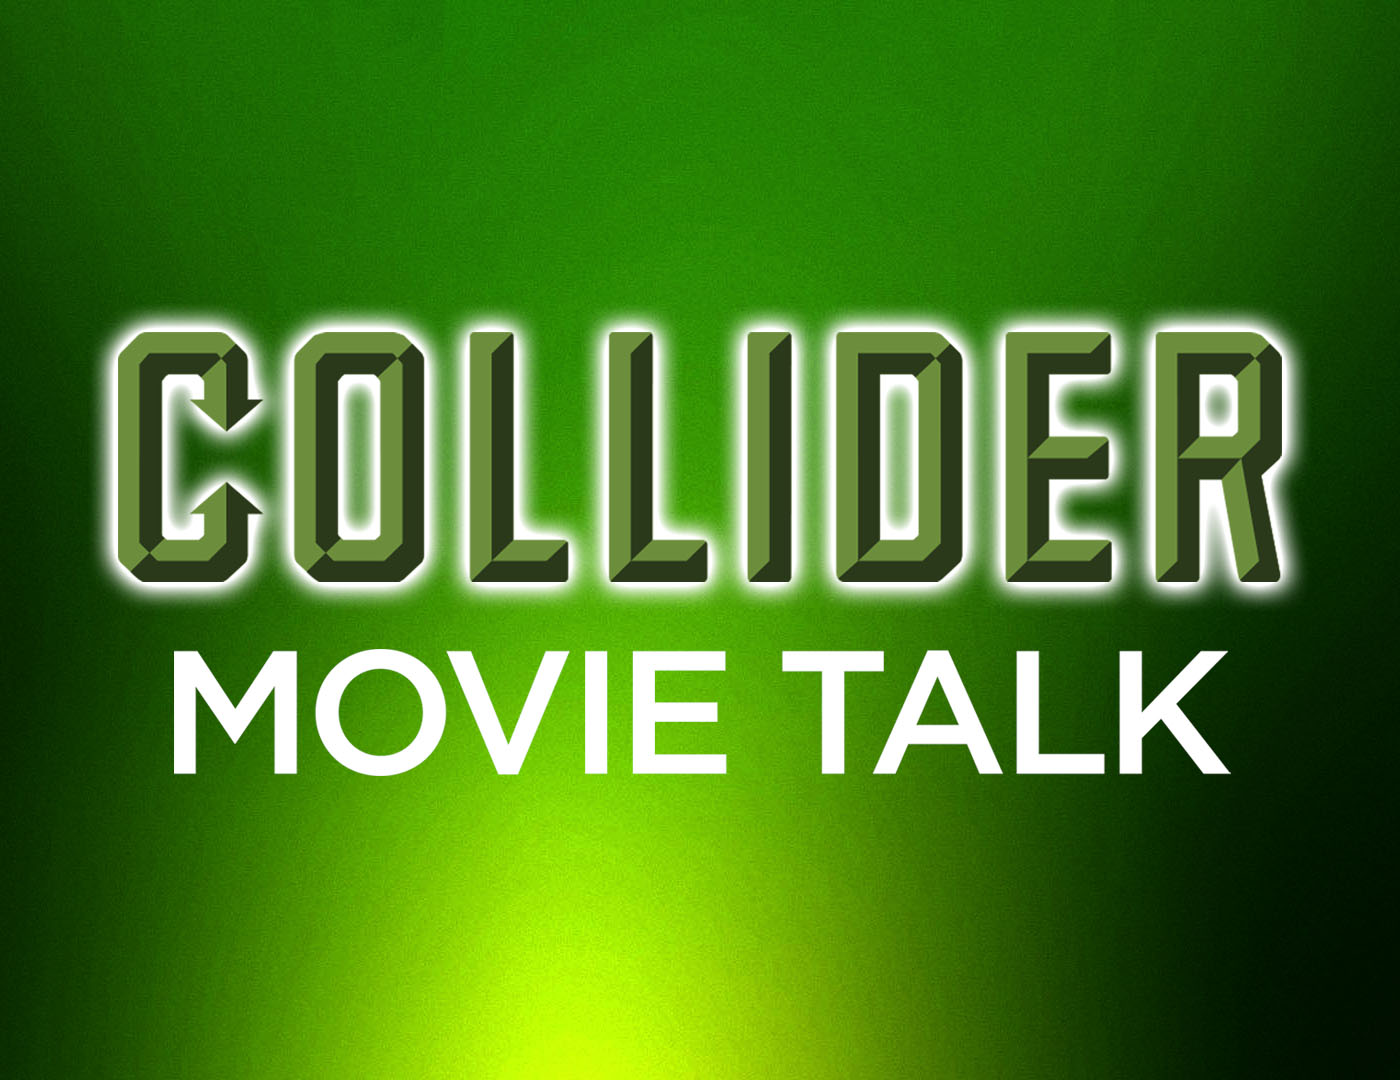 Collider Movie Talk - Next Fast & Furious Movies Will Be Last Trilogy, Matt Damon As Daredevil?